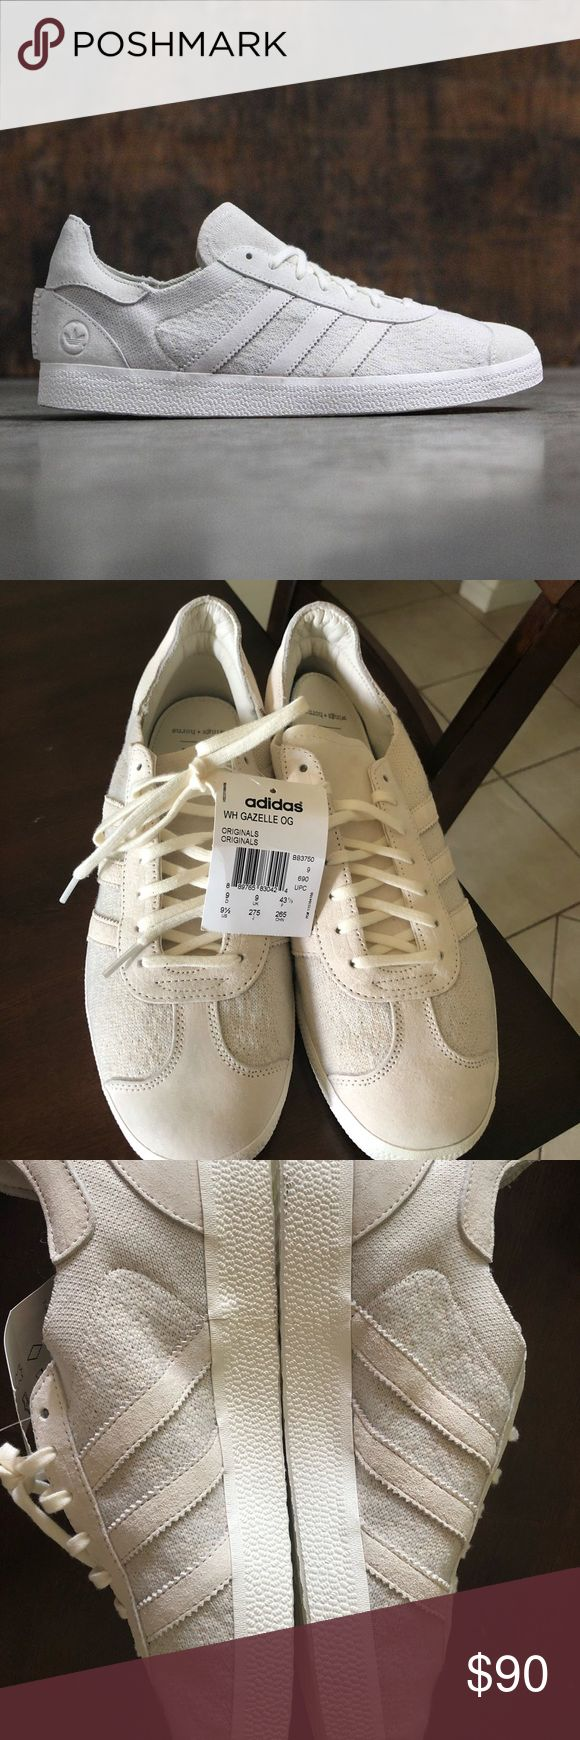 Adidas wings + horns sz 9.5 Gazelle Brand New with tags No Box adidas Shoes Sneakers